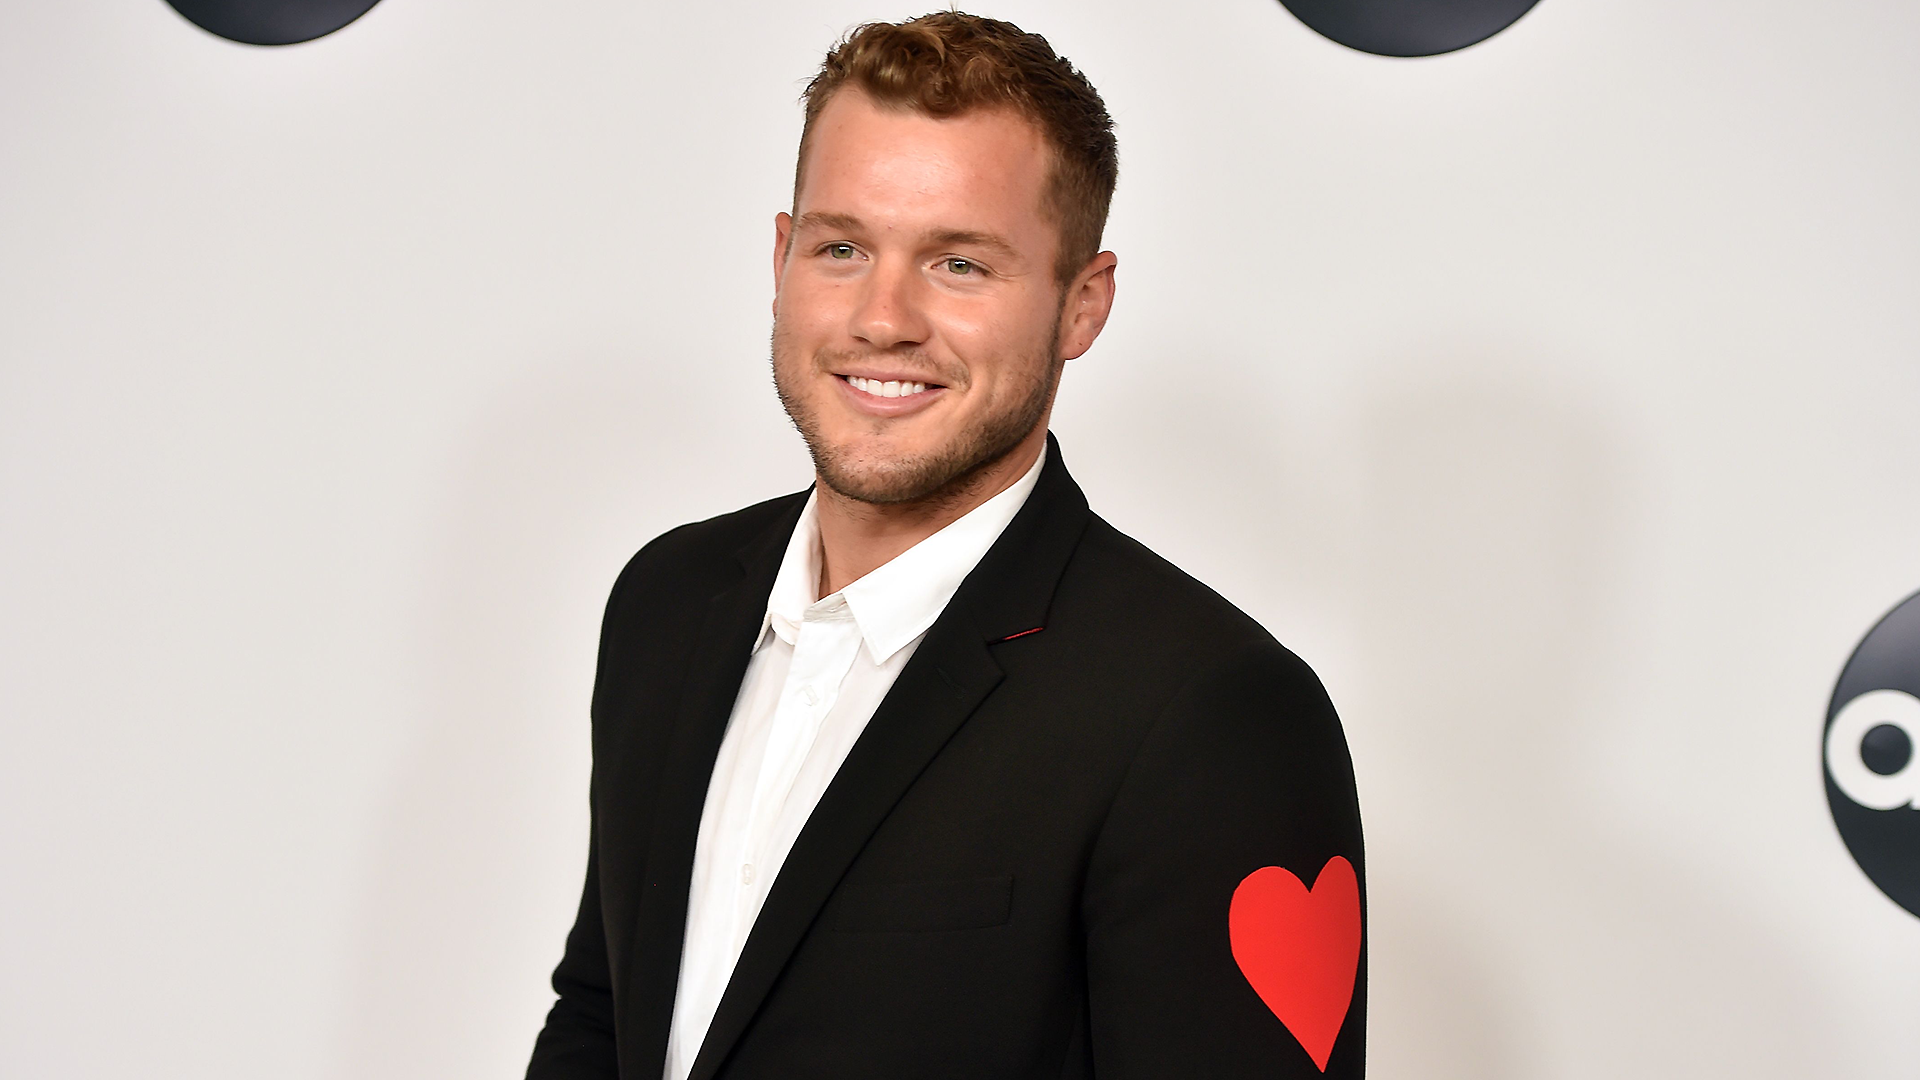 Colton Underwood's NFL, college football career before 'The Bachelor' fame